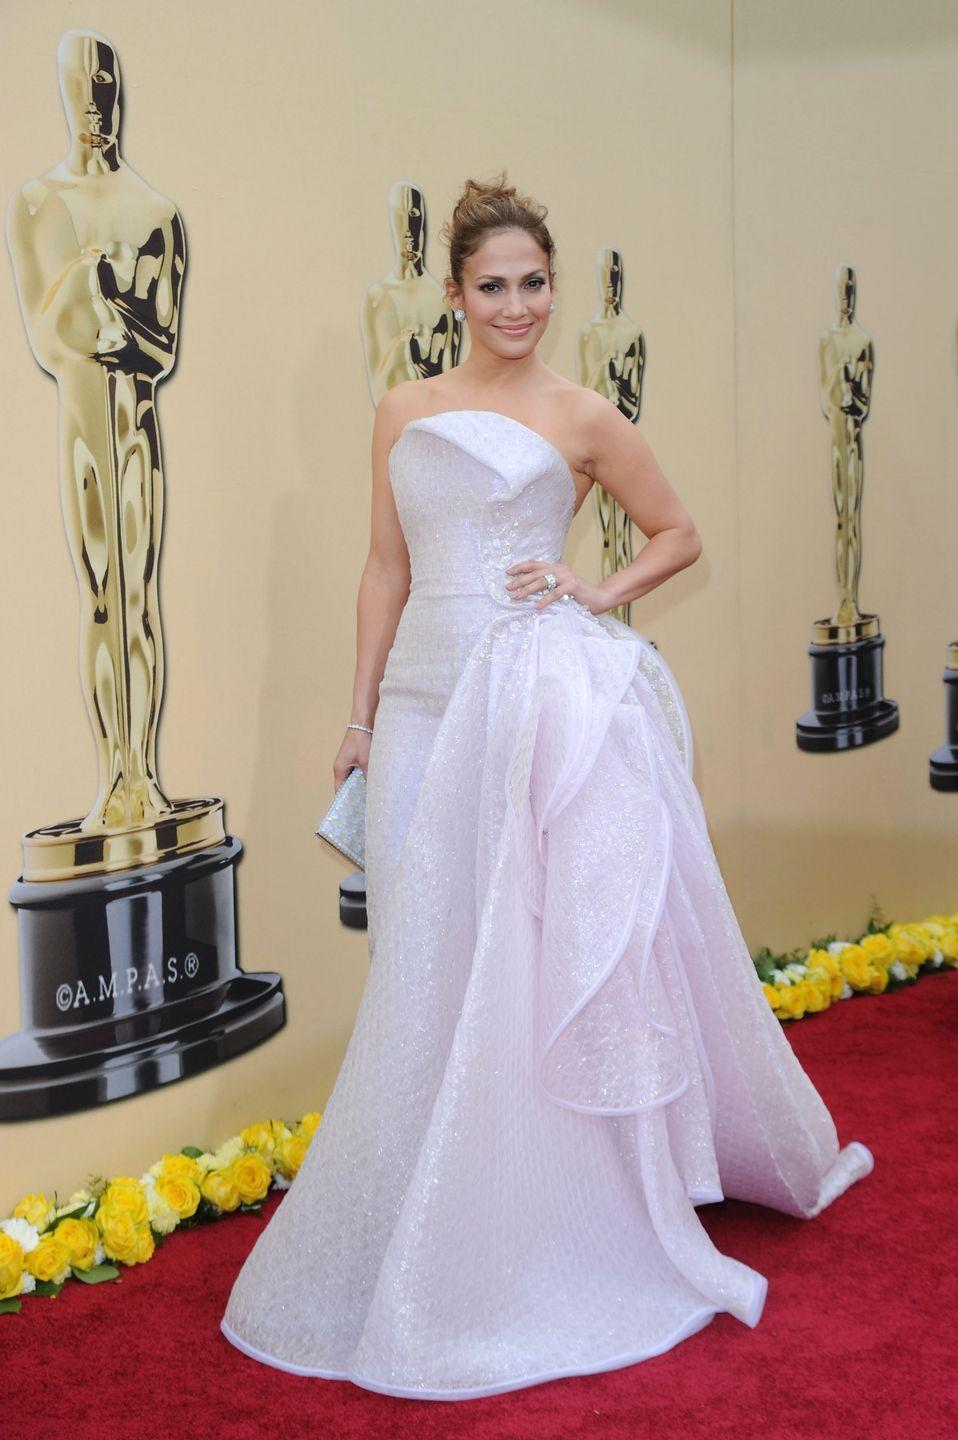 <p><strong>When: </strong>March 2010</p><p><strong>Where: </strong>The Academy Awards</p><p><strong>Wearing: </strong>Armani Privé</p>